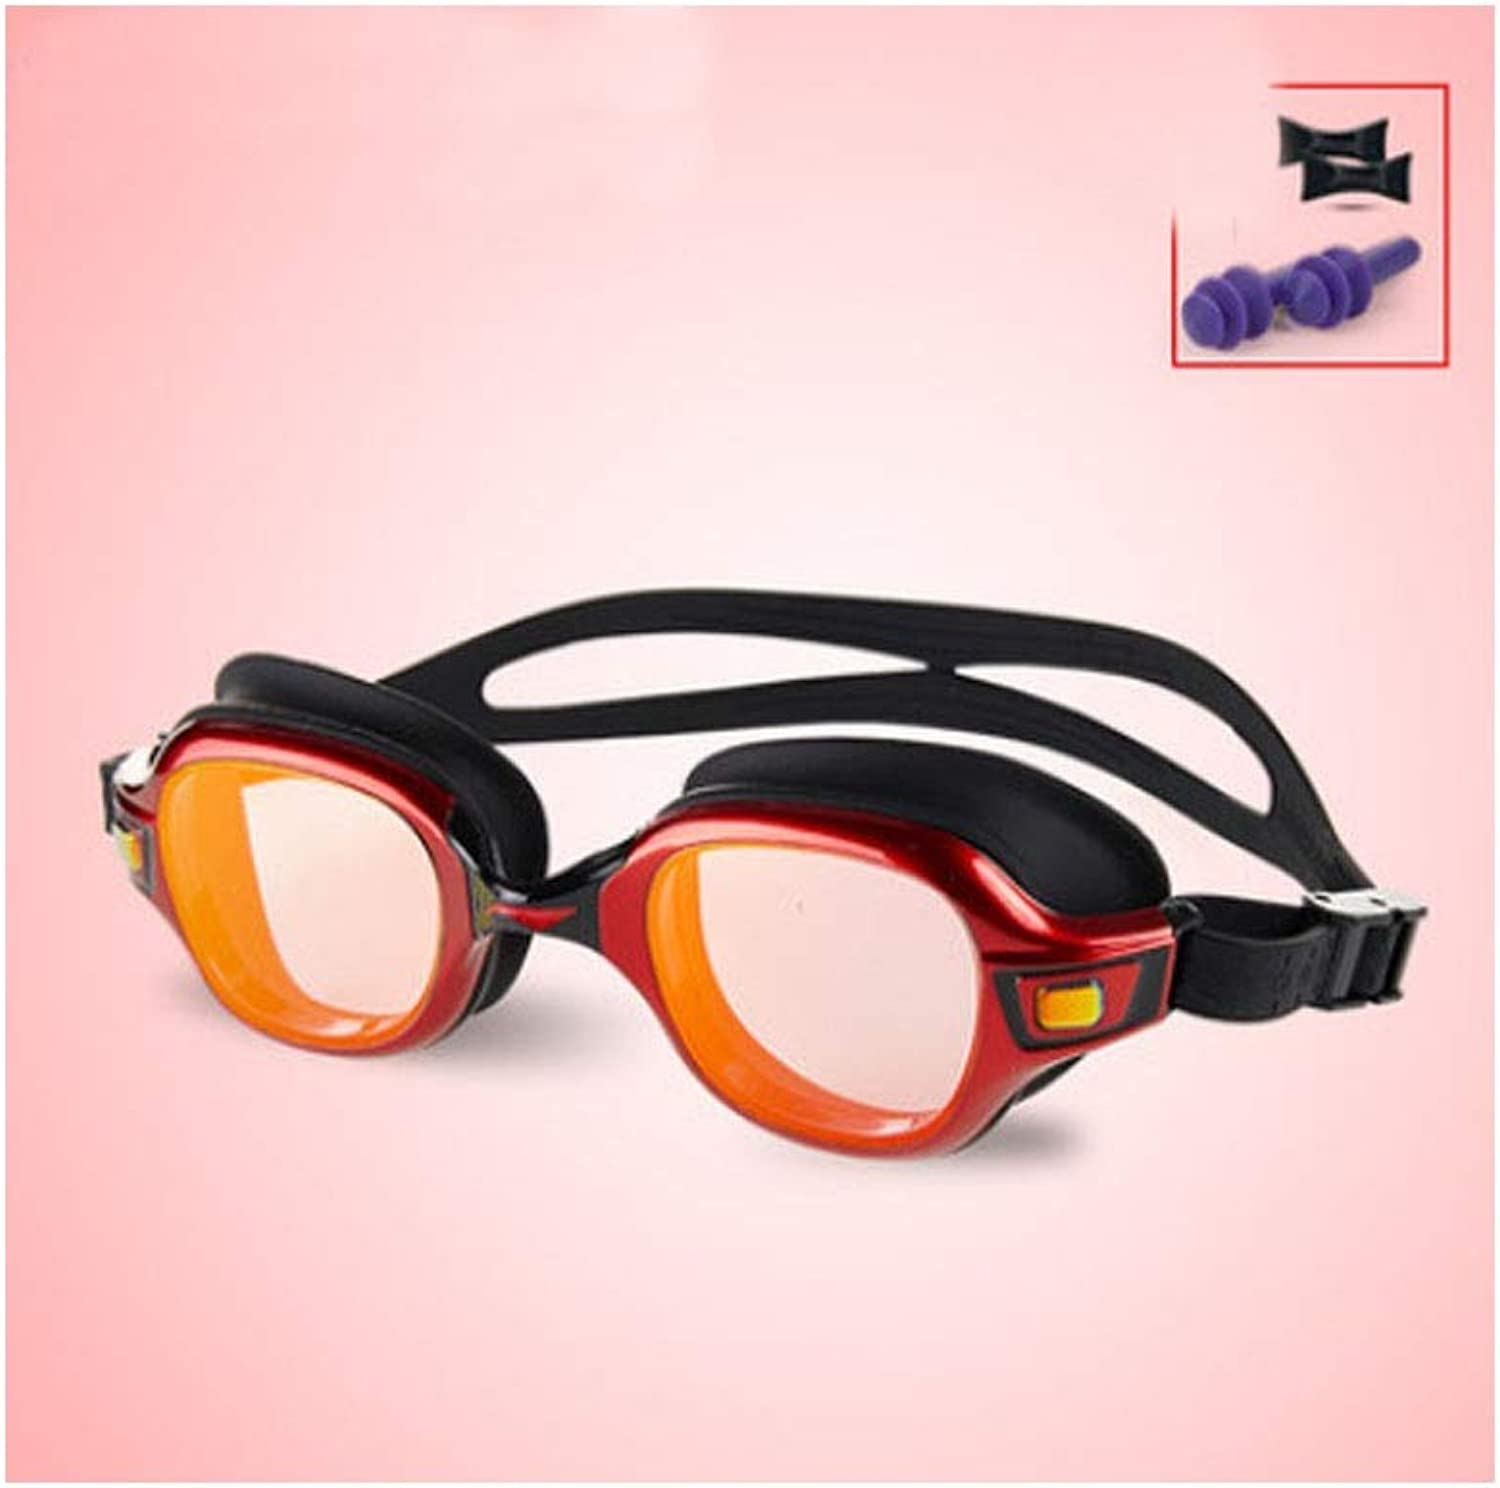 Goggles, Dreamy pink Red Design Goggles, HD Waterproof and AntiFog Design, Large Box Swimming Equipment (White, Gifts; Nose Clip + Earplugs)